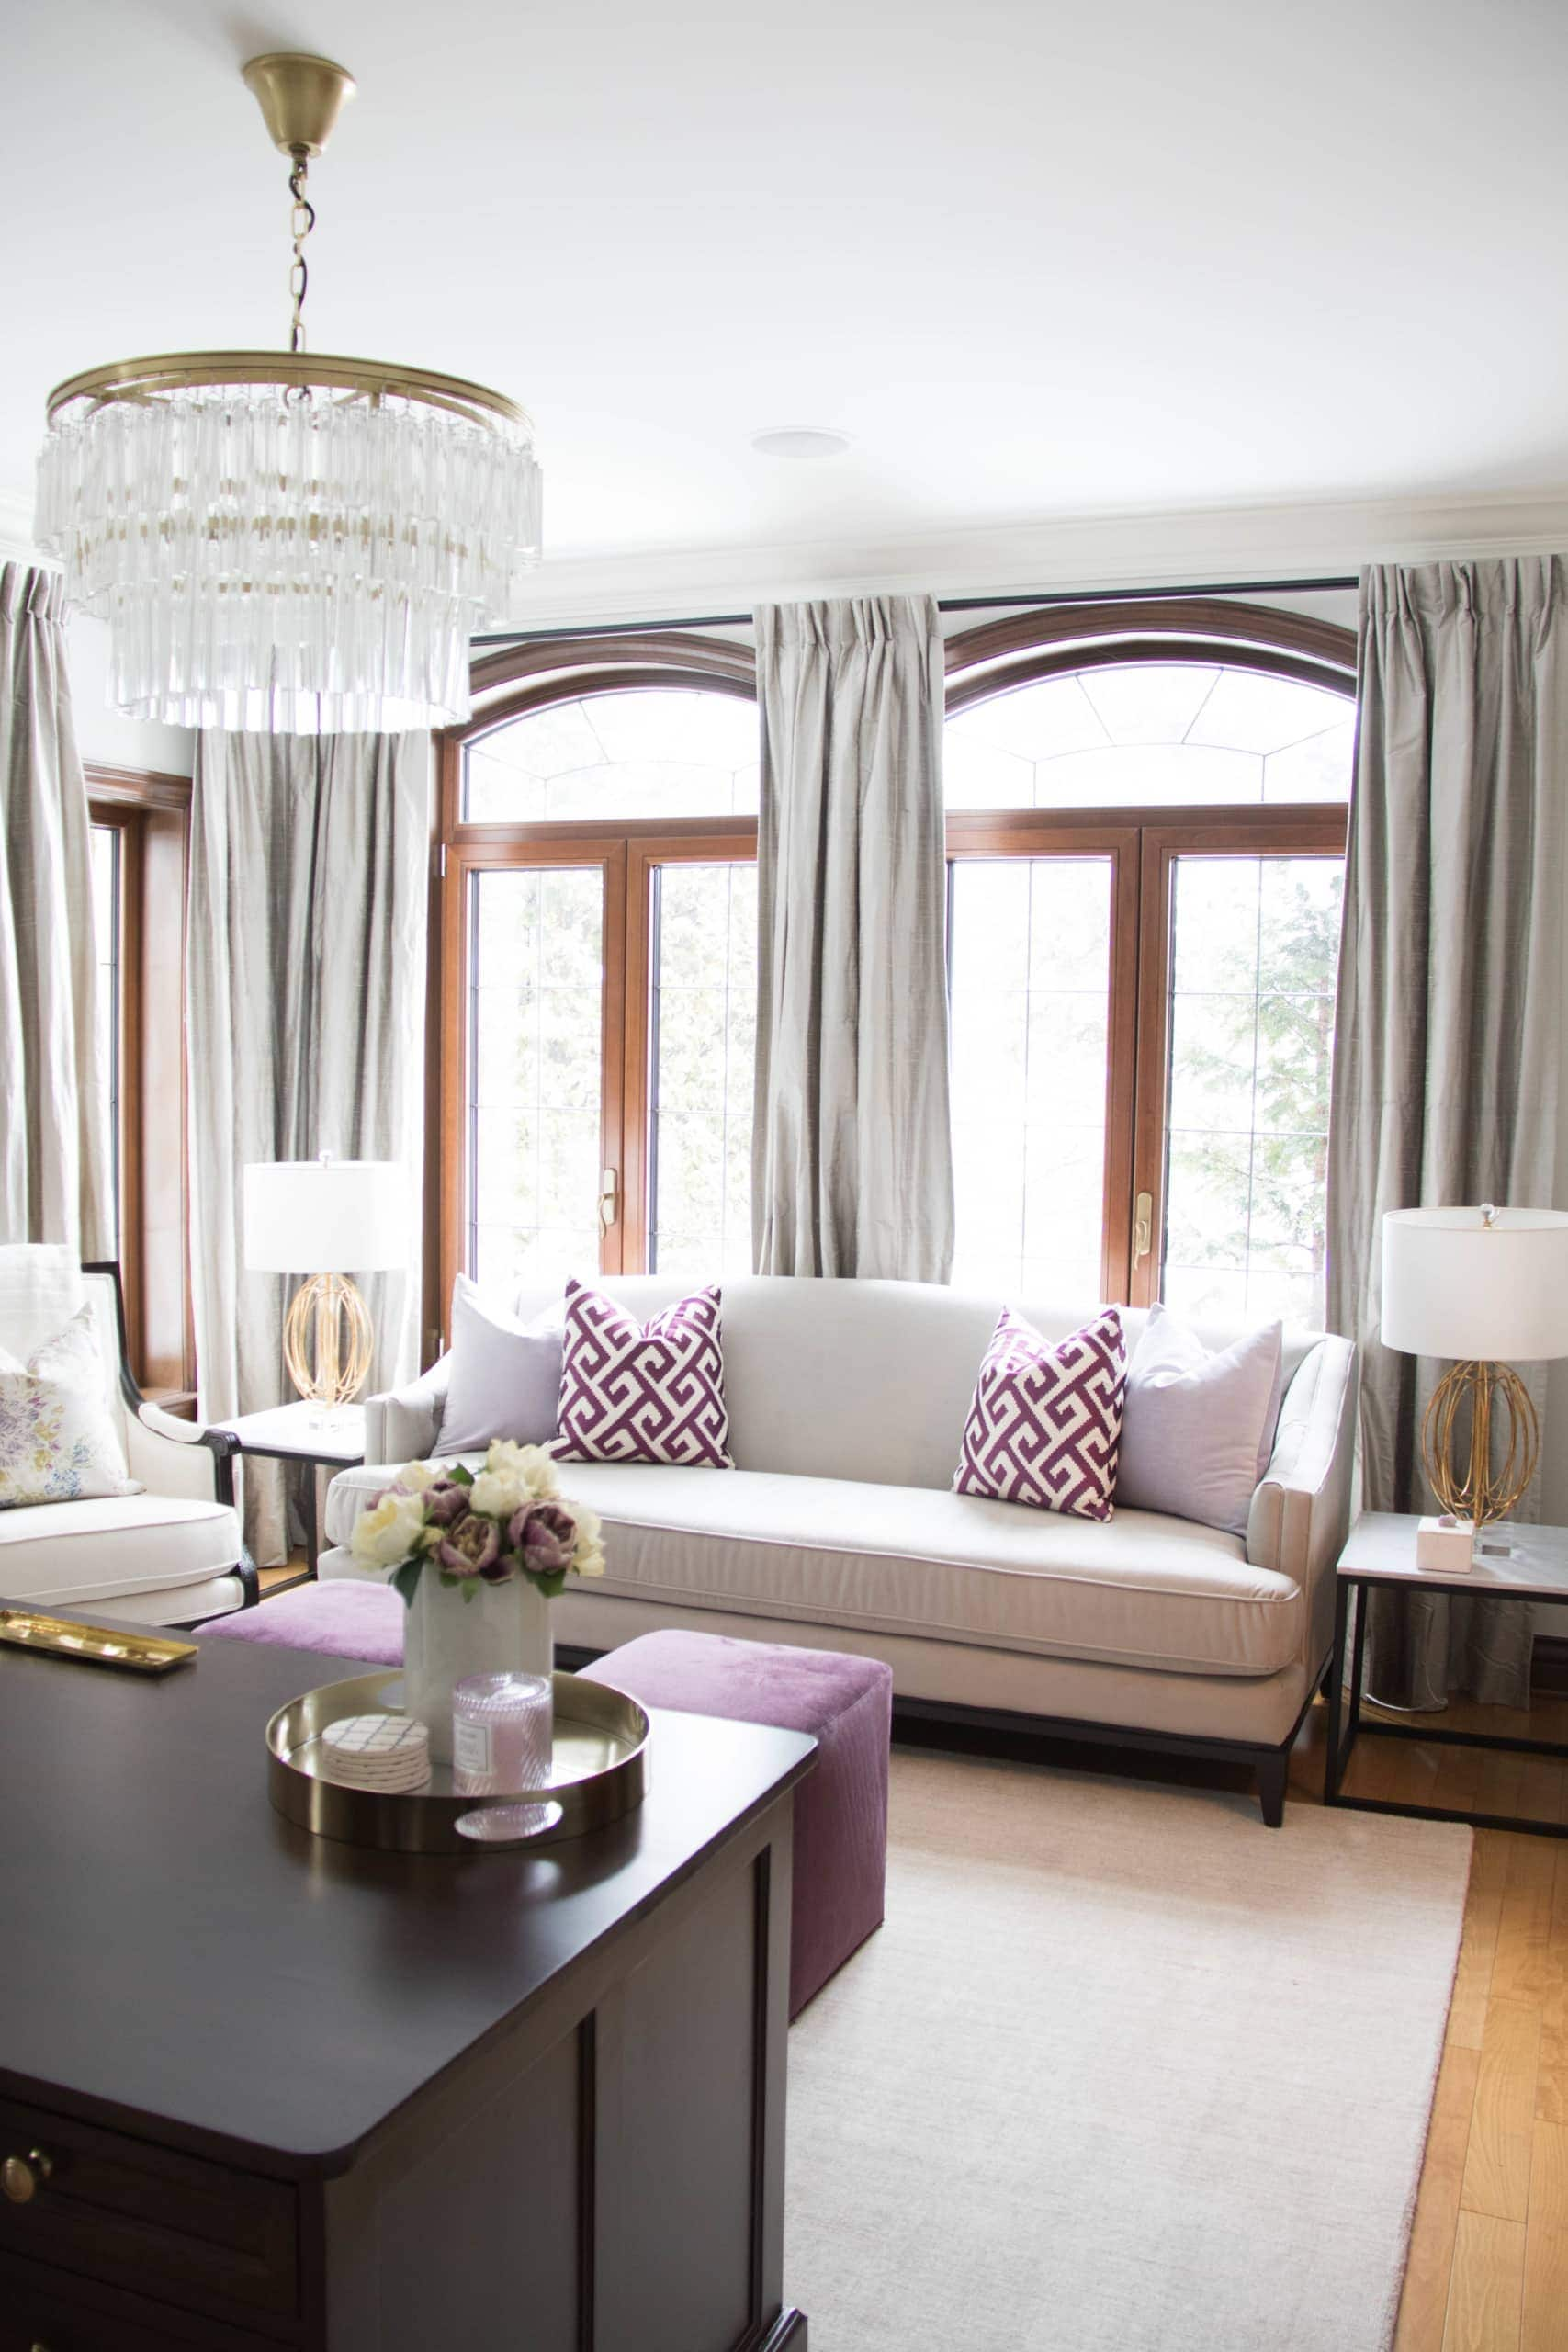 White couch against two large windows